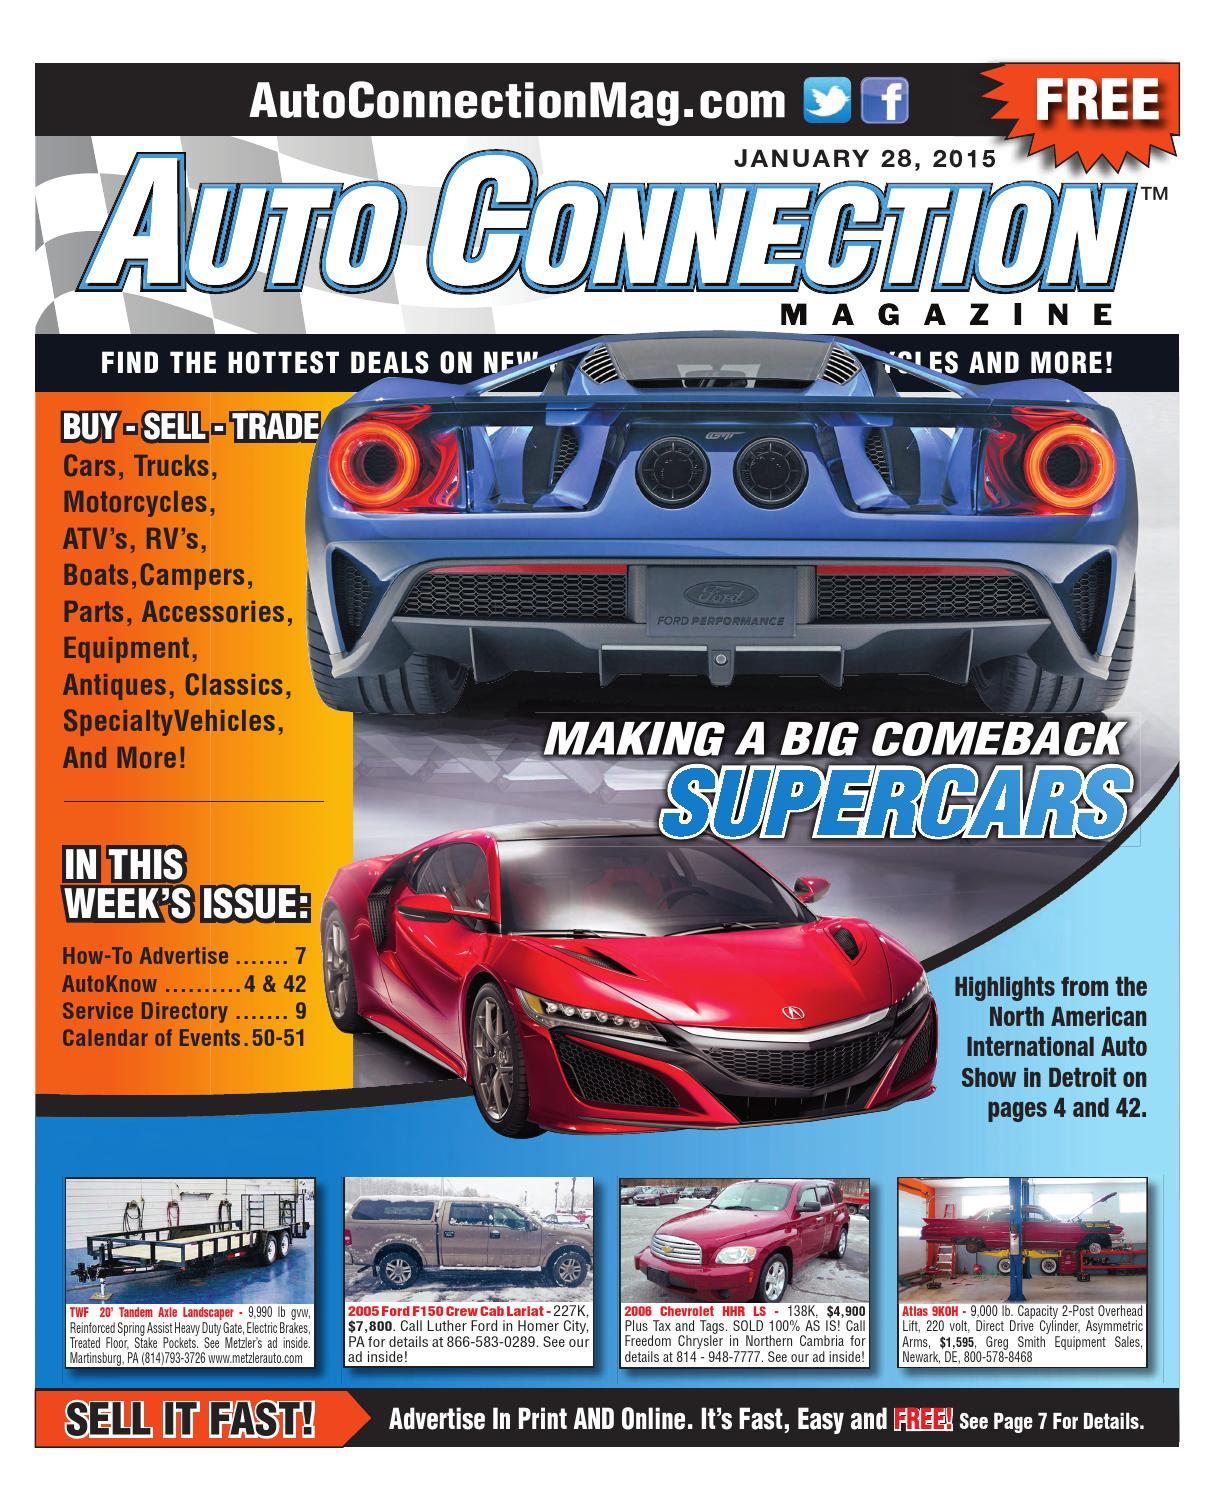 01 28 15 auto connection magazine by auto connection magazine issuu sciox Choice Image